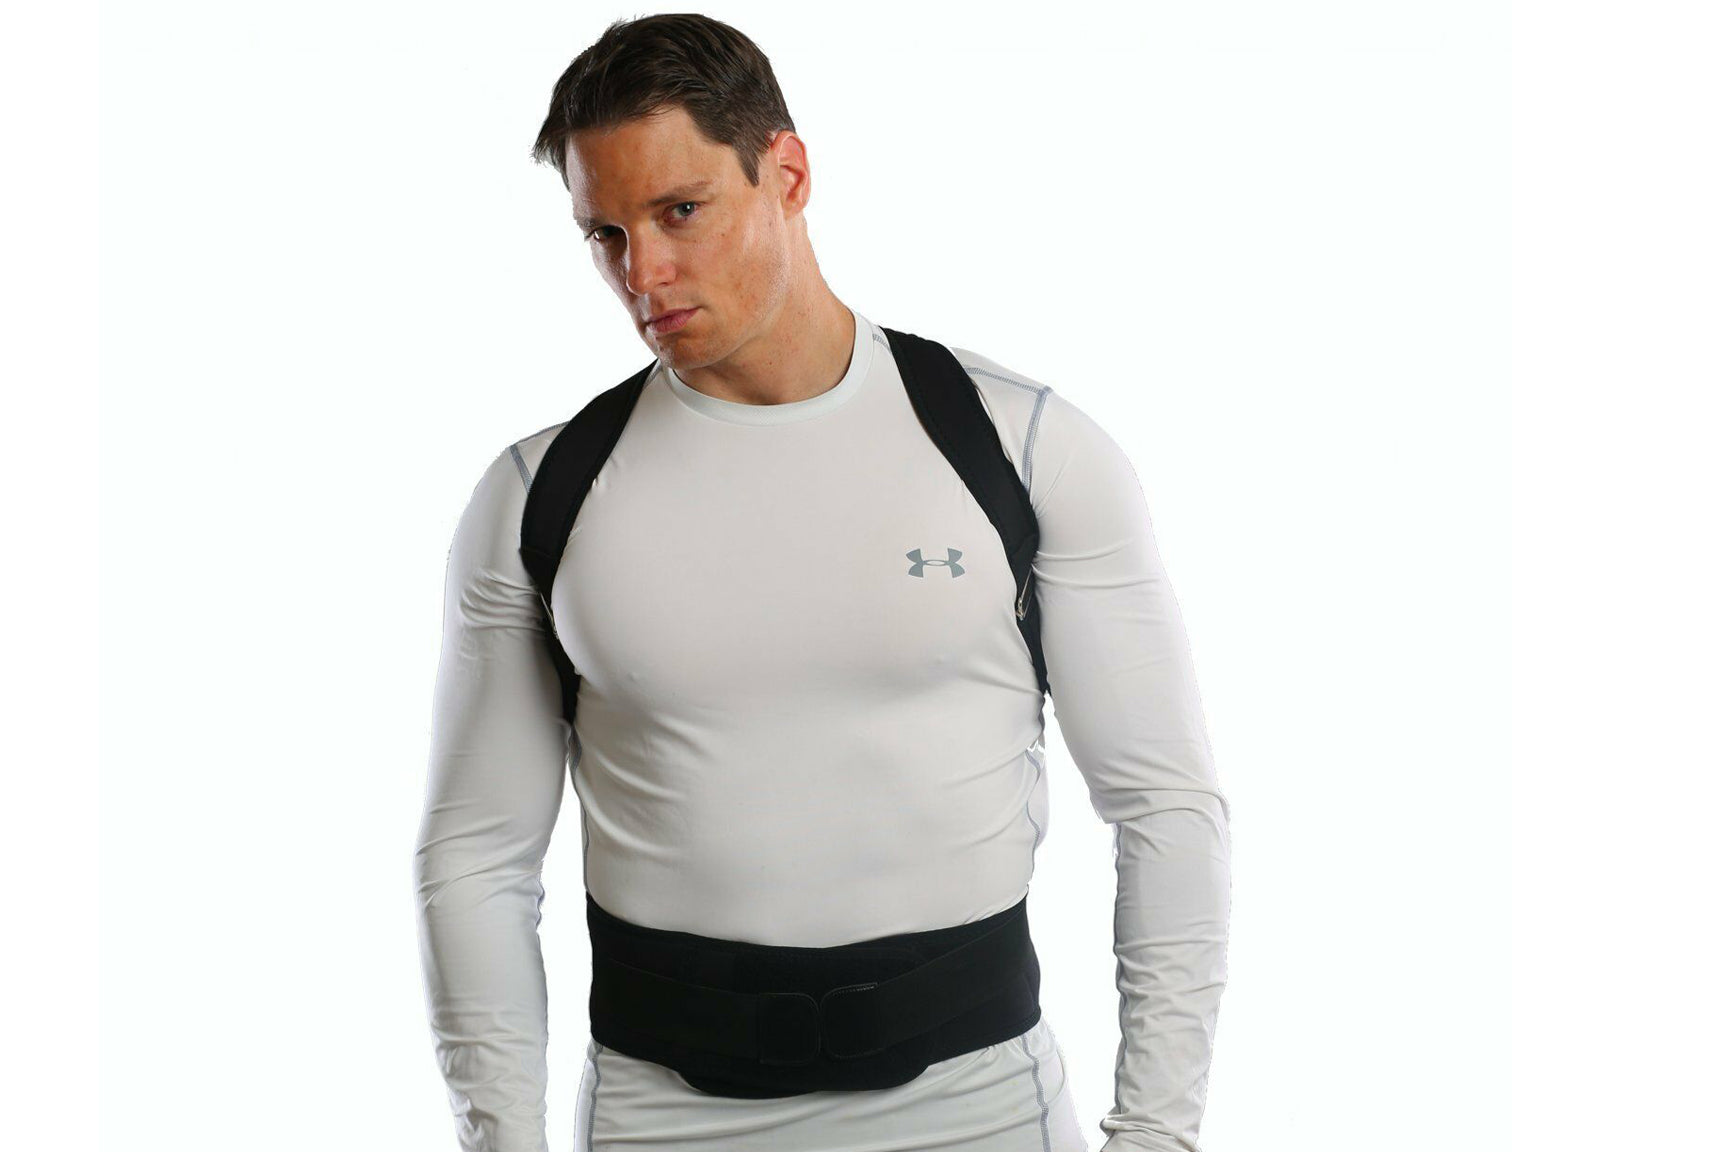 Weighted Vest For Female